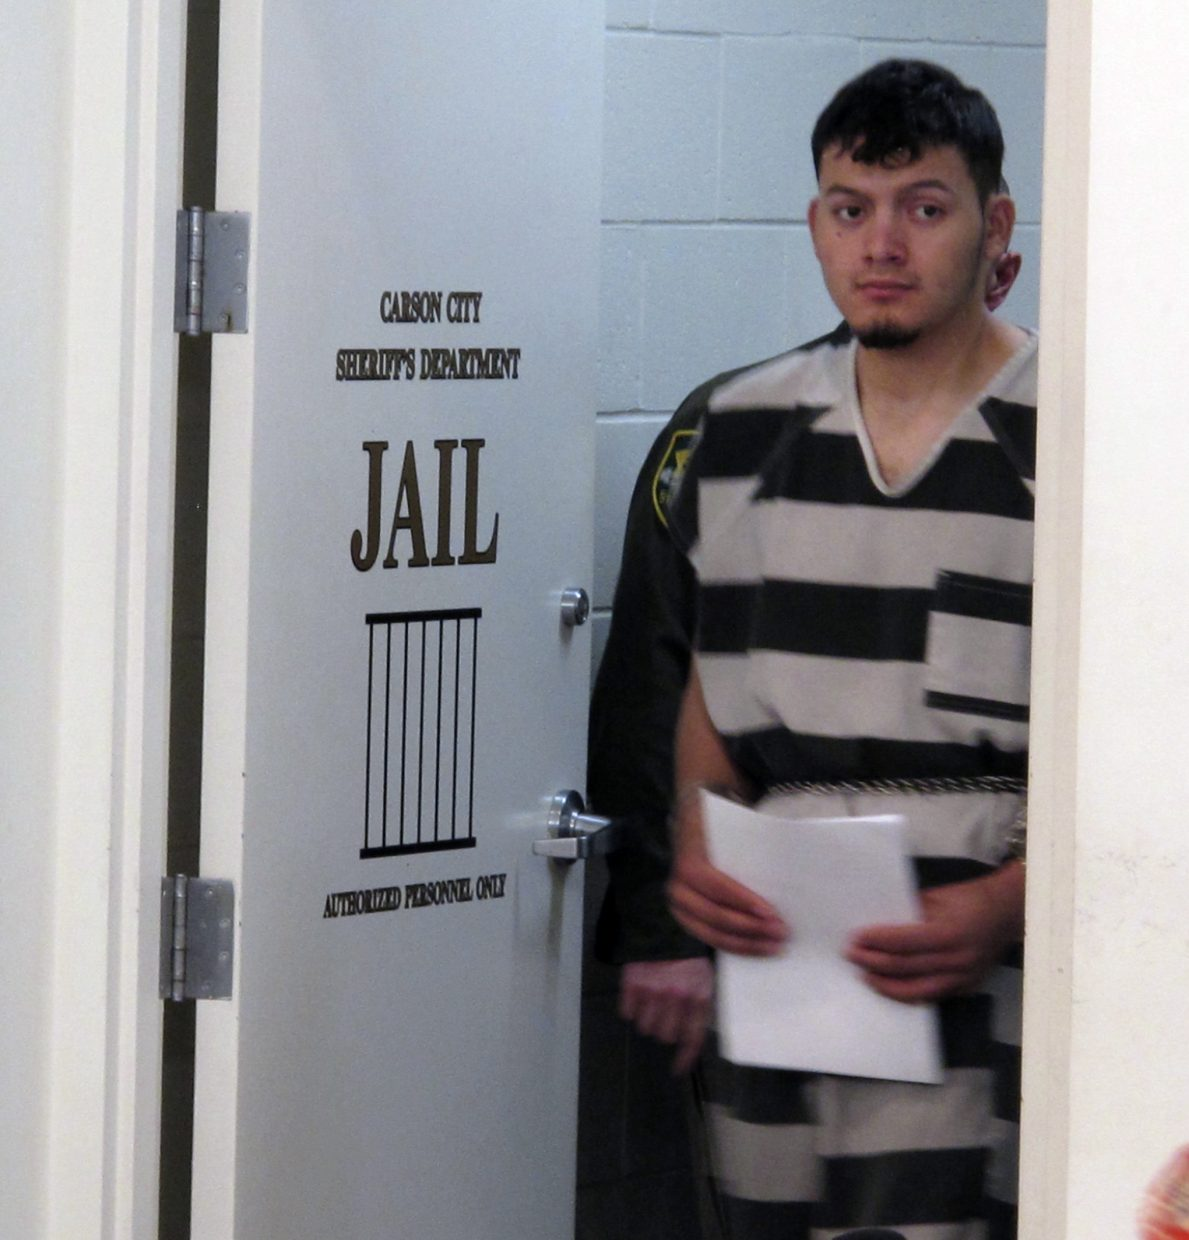 Wilber Ernesto Martinez-Guzman, 19, of El Salvador, is escorted into the courtroom for his initial appearance in Carson City Justice Court, Thursday, Jan. 24, 2019, in Carson City, Nev. Martinez-Guzman was arraigned on 36 felonies including two dozen weapon charges. He's a suspect in a series of four homicides earlier this month in Reno and south of Carson City in rural Gardnerville. Prosecutors say additional charges are pending.